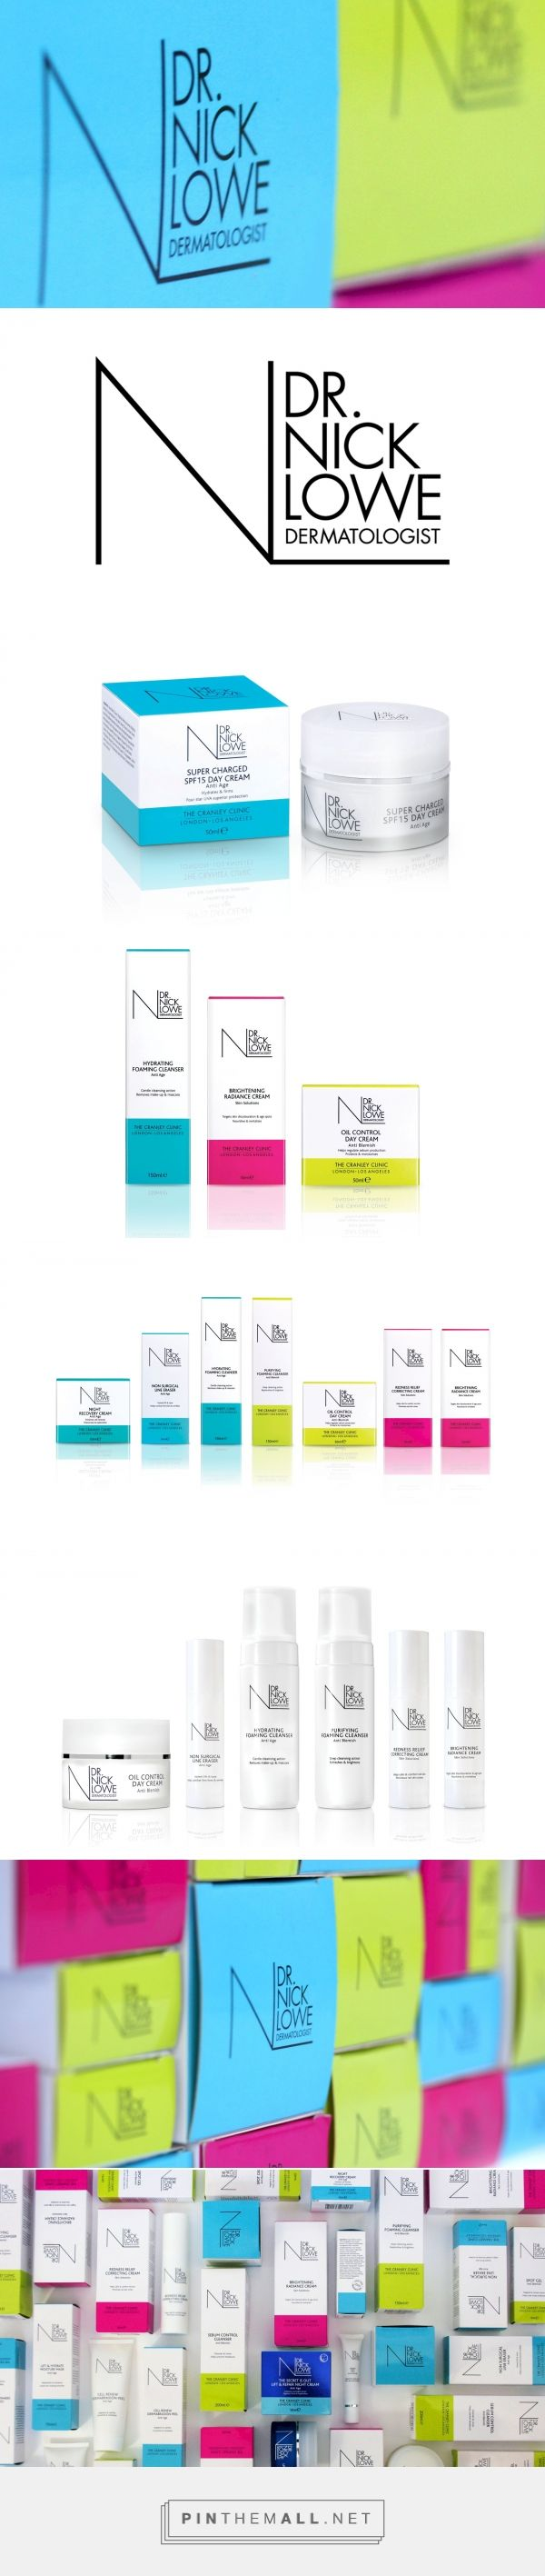 Dr. Lowe Skin Care Packaging by R Design | Fivestar Branding – Design and Branding Agency & Inspiration Gallery